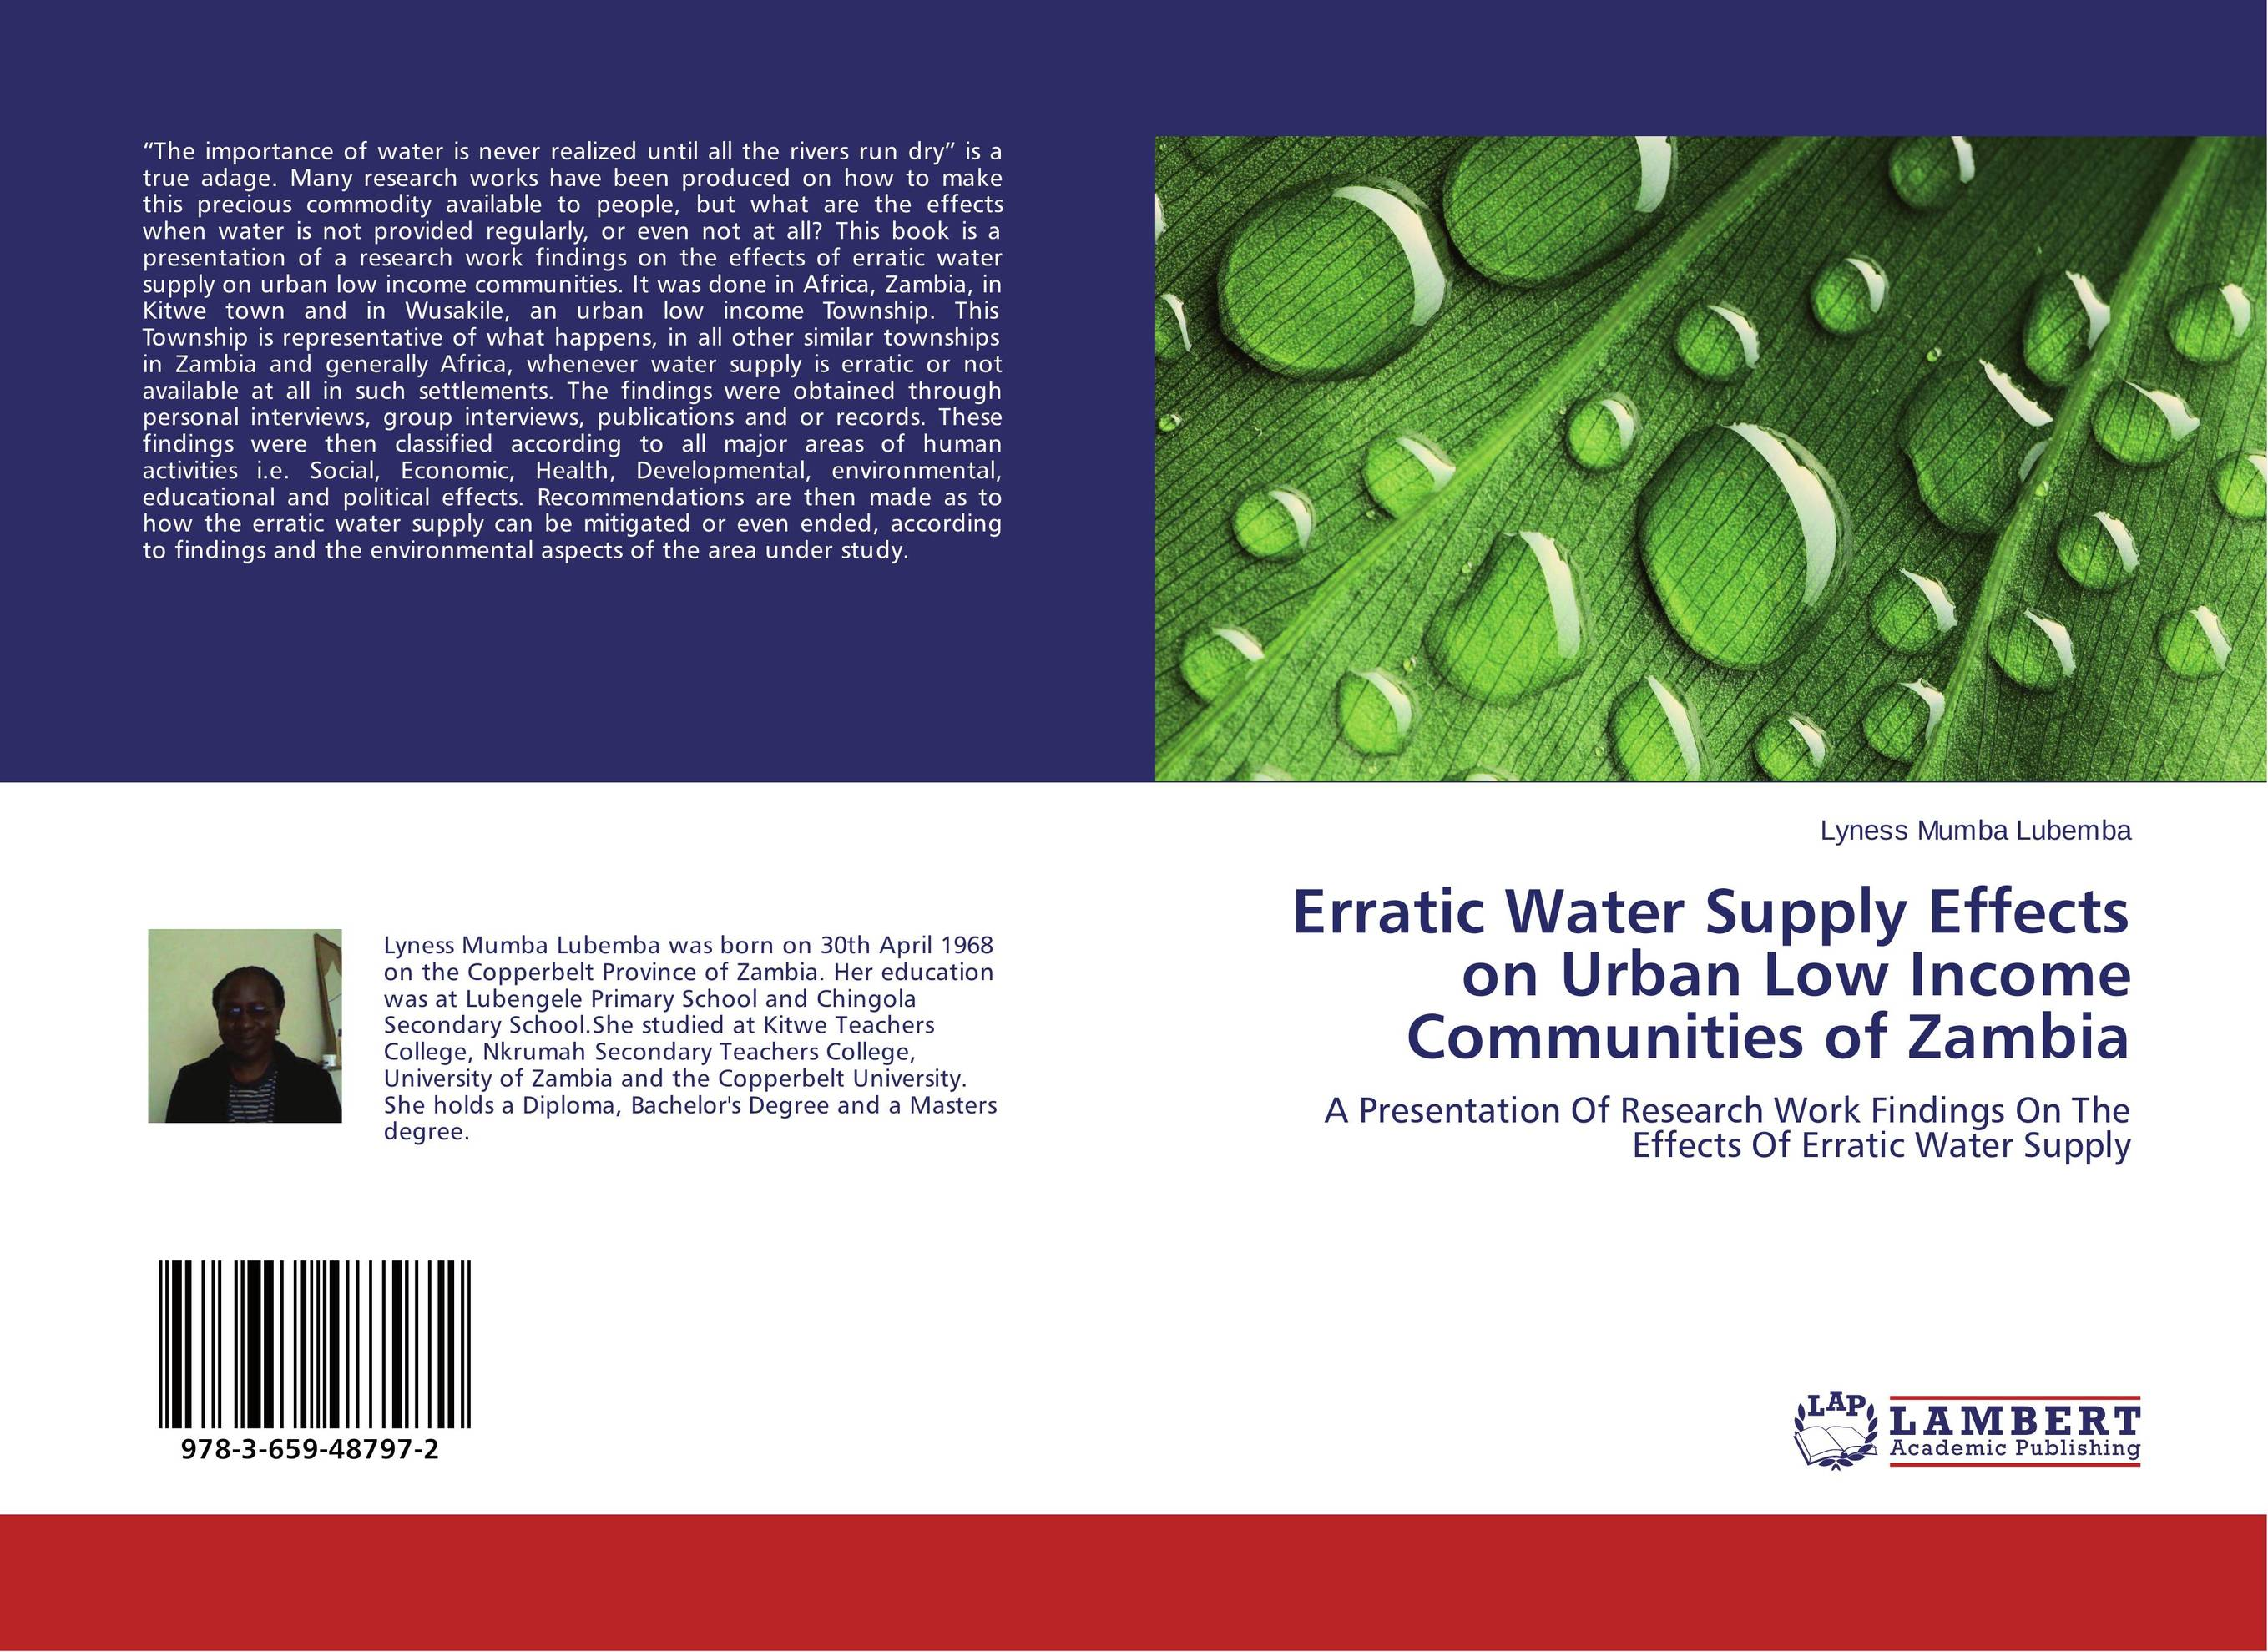 Erratic Water Supply Effects on Urban Low Income Communities of Zambia